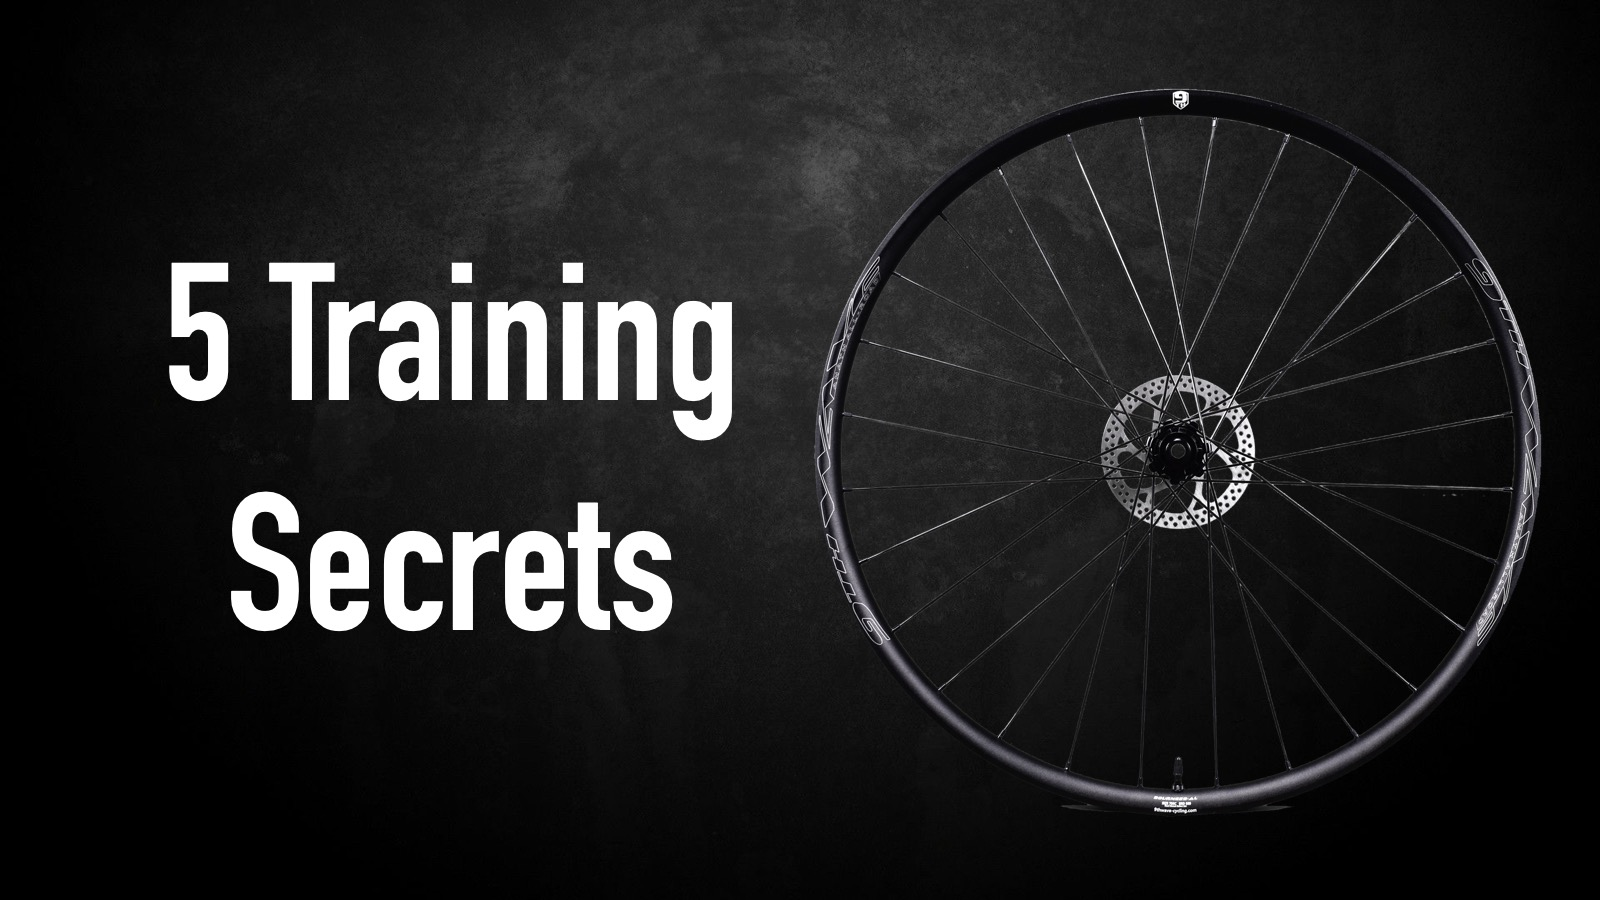 Training Secrets